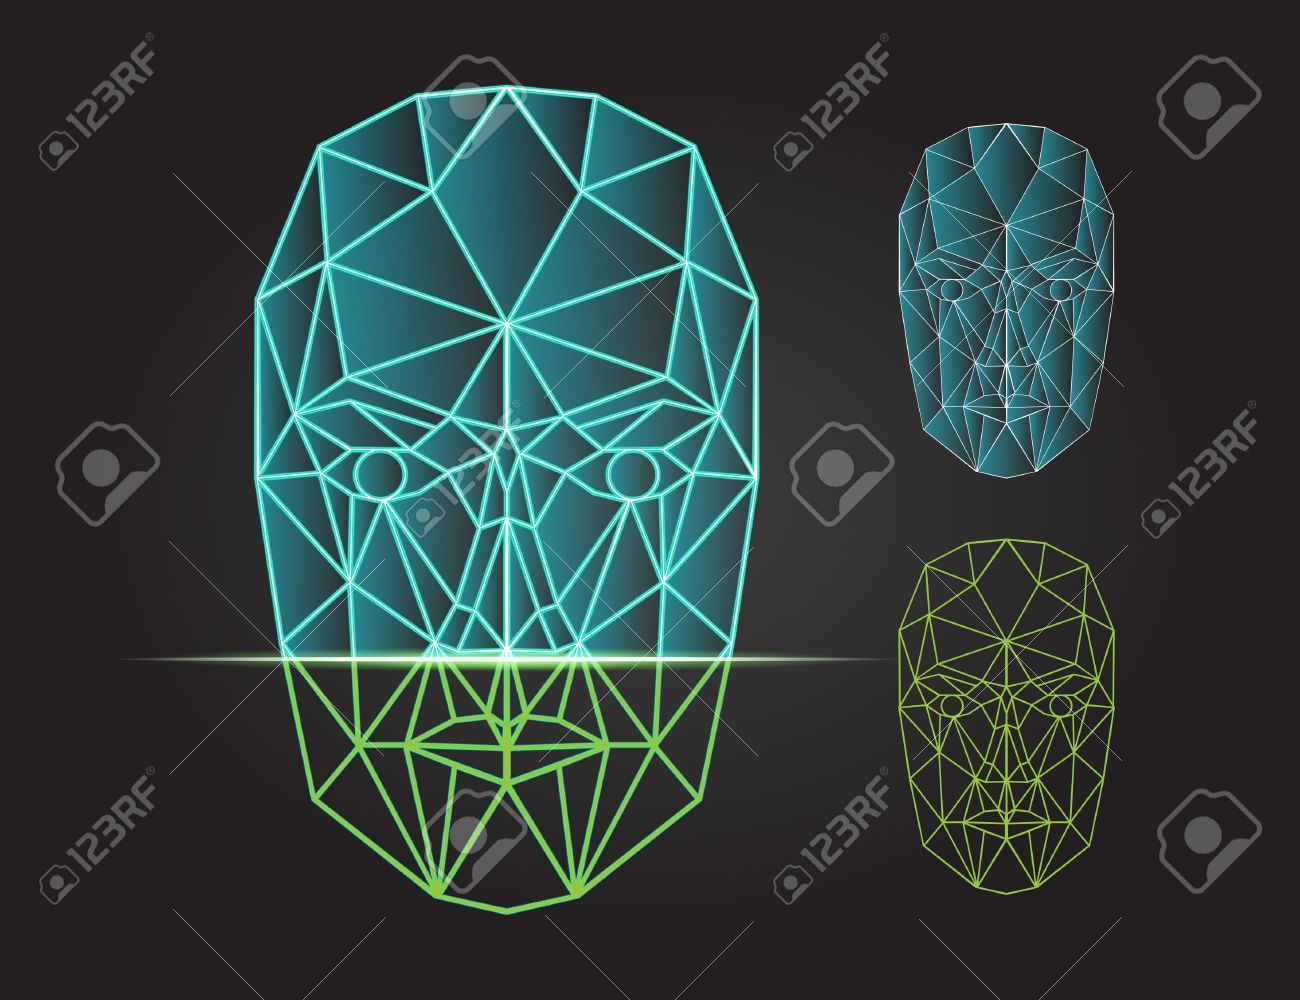 Face recognition - biometric security system. Face scanning, front view of human head. Vector illustration - 50093306